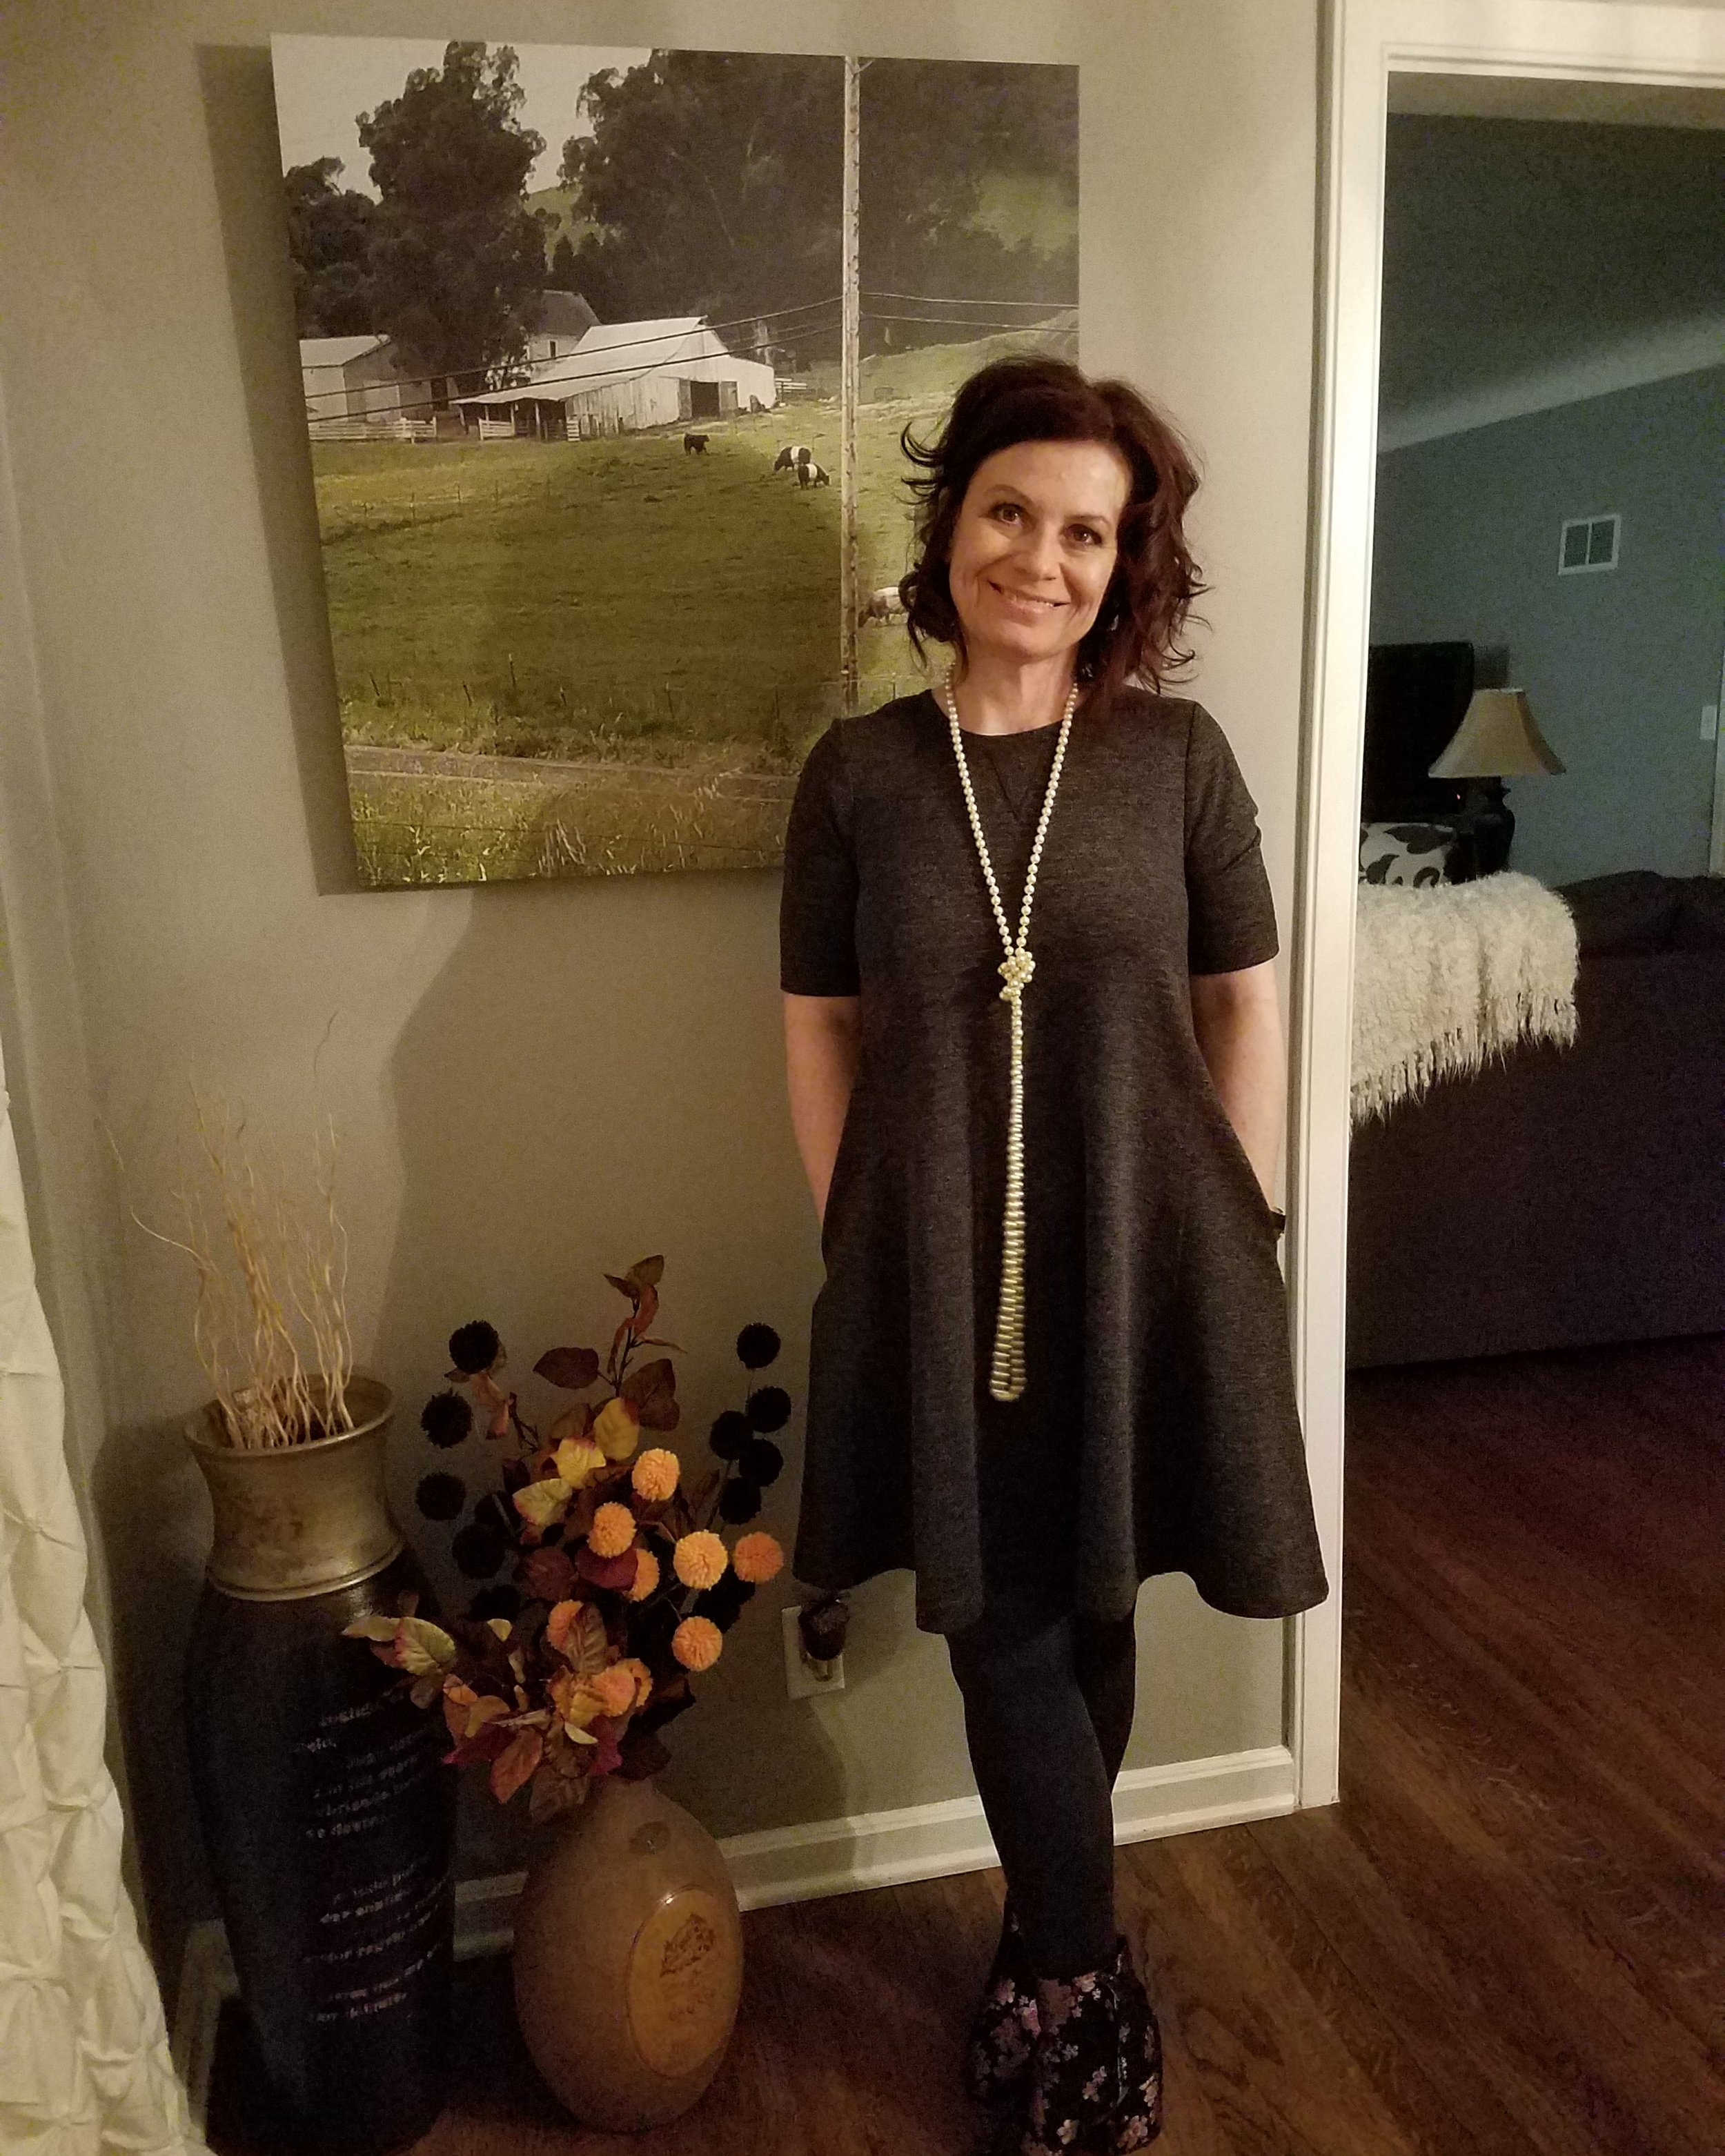 Here's the gray dress again. This time dressed differently to celebrate my favorite film student's birthday. Paired with tights and floral booties - love this! A simple dress in a neutral color can really be worn so many different ways.